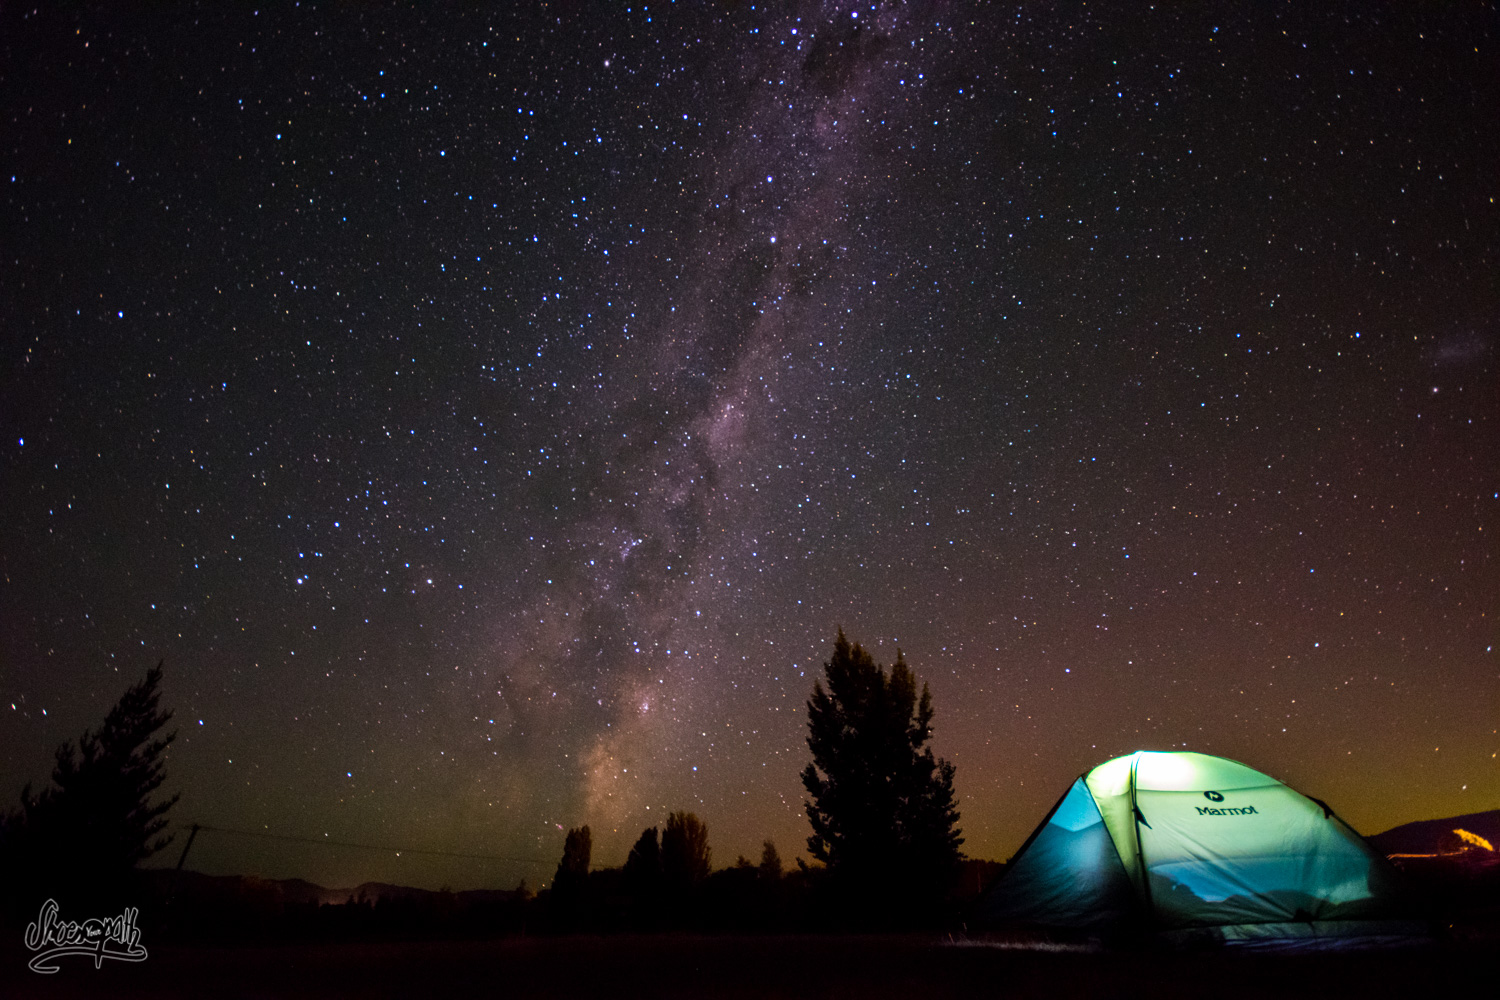 Camping under the stars in Albert Town, not far from Wanaka